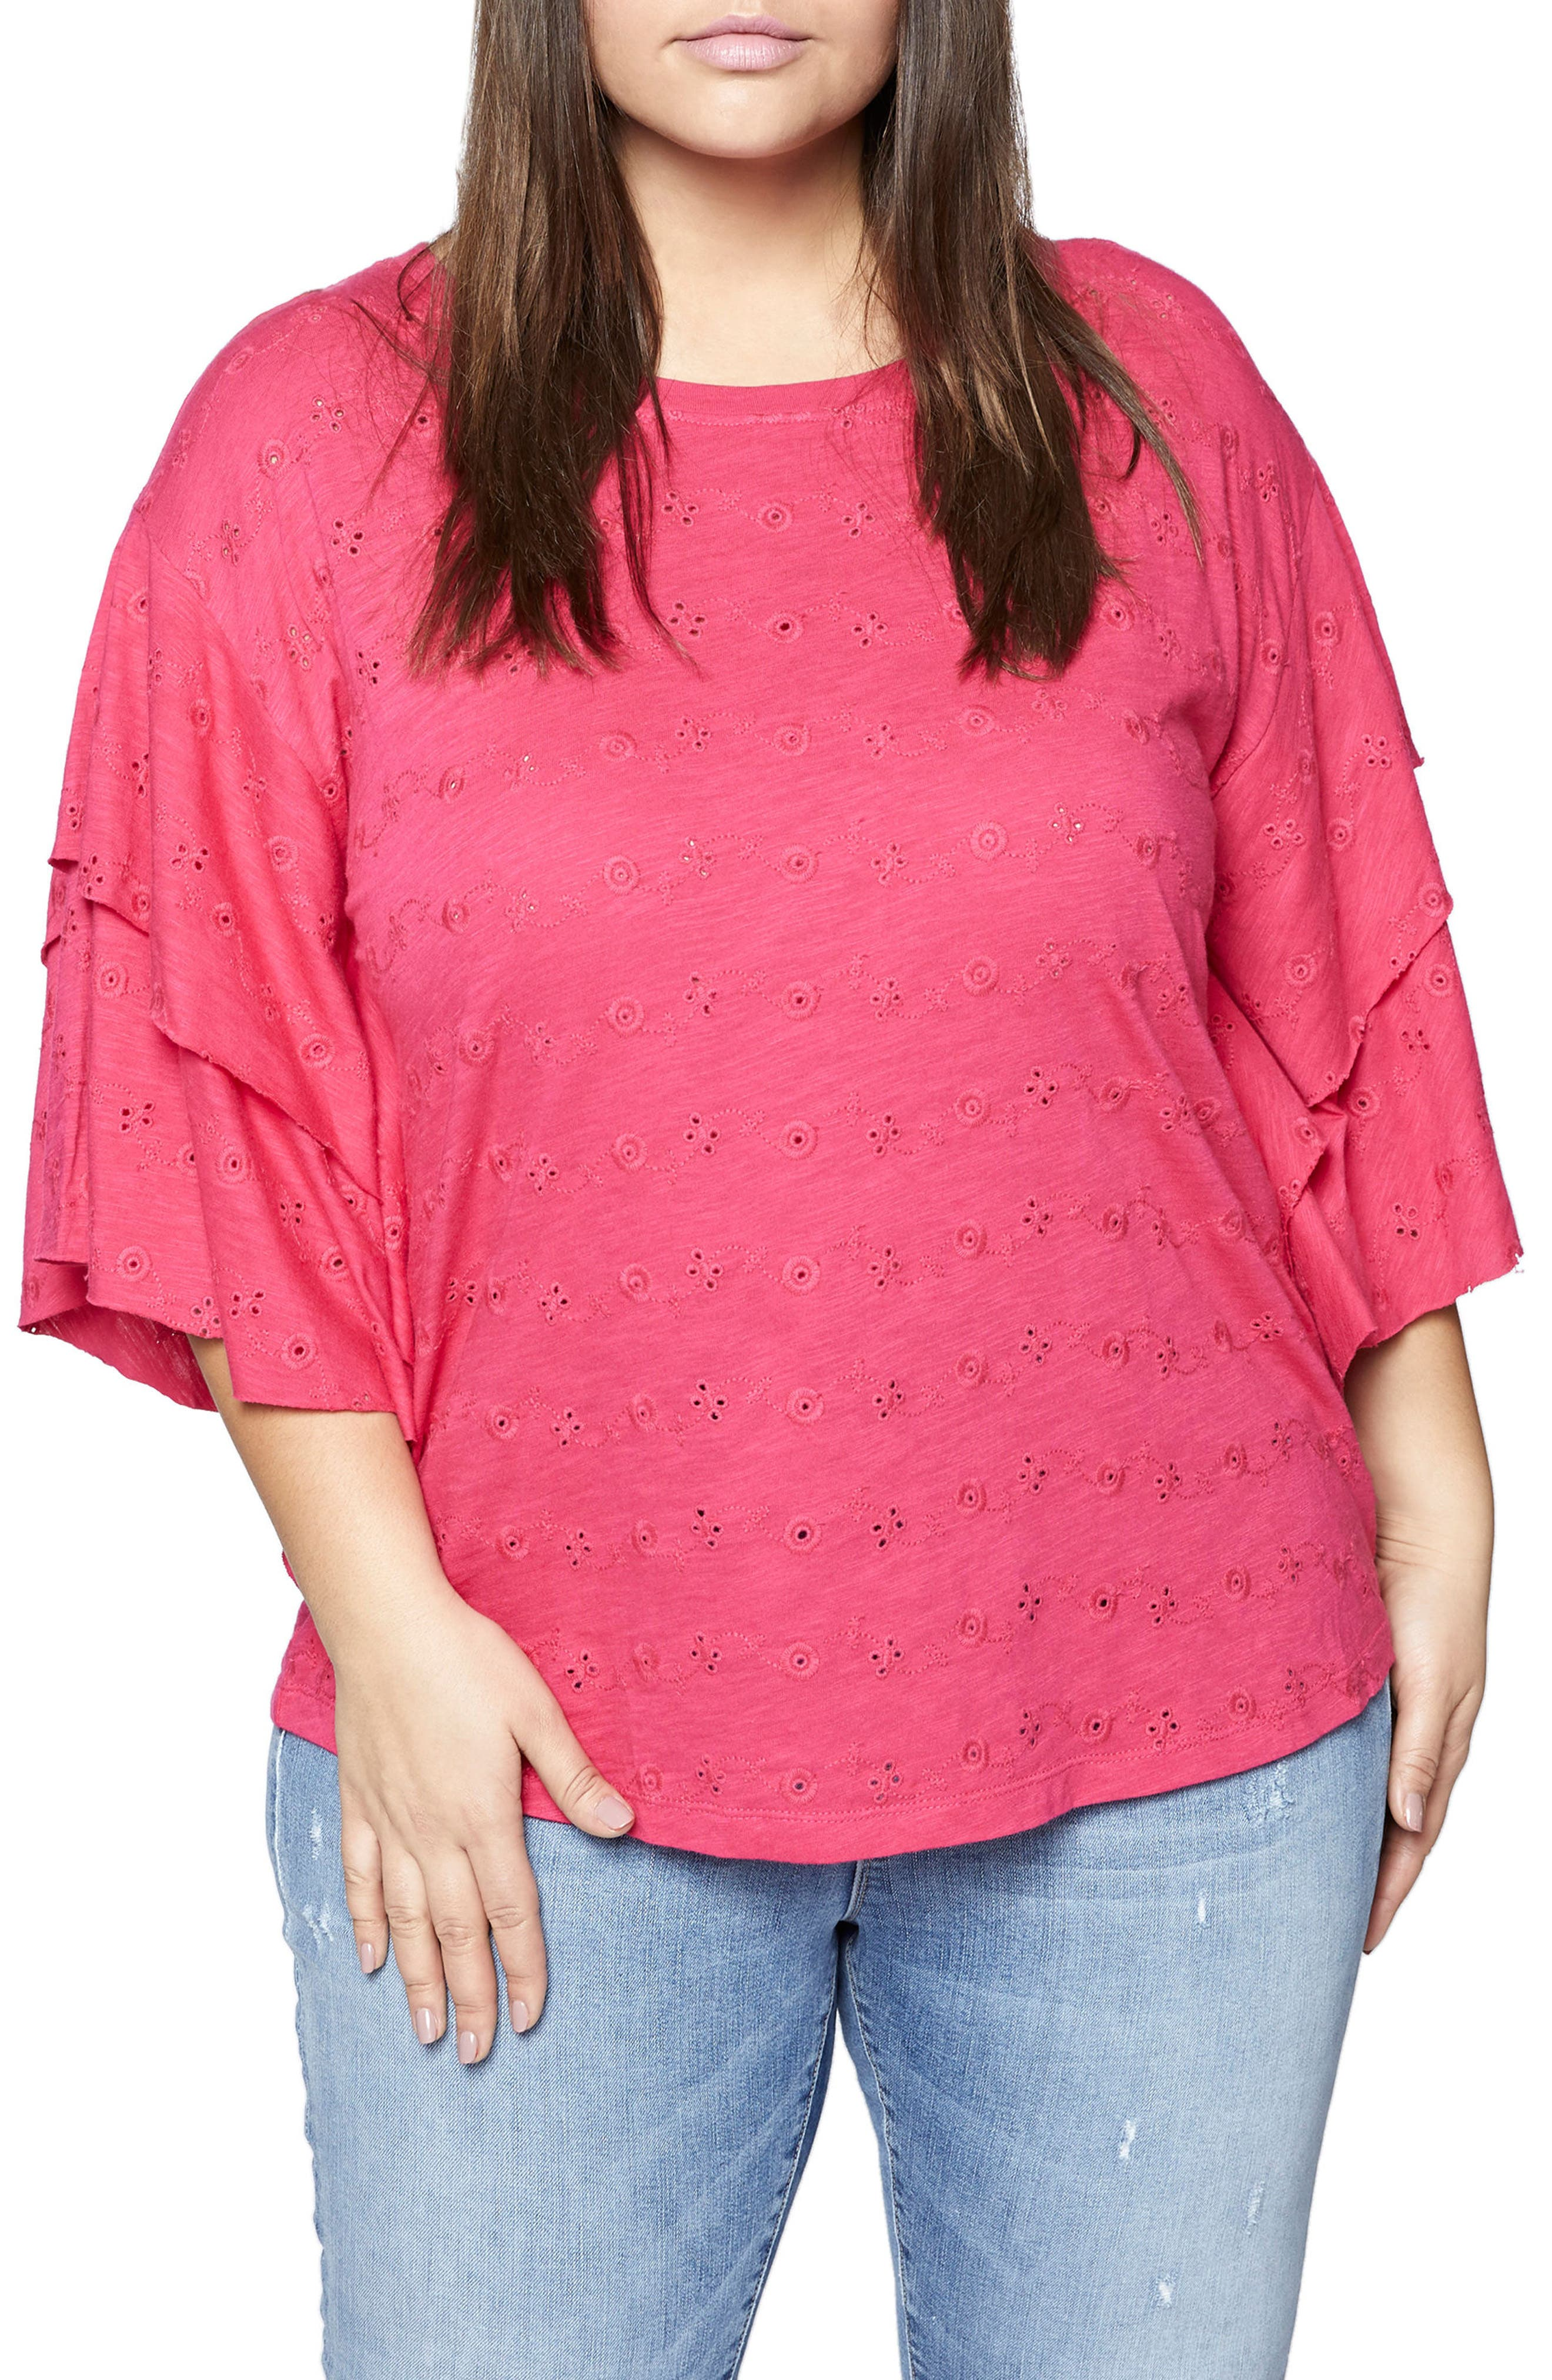 Elise Ruffled Eyelet Top,                             Main thumbnail 1, color,                             Camellia